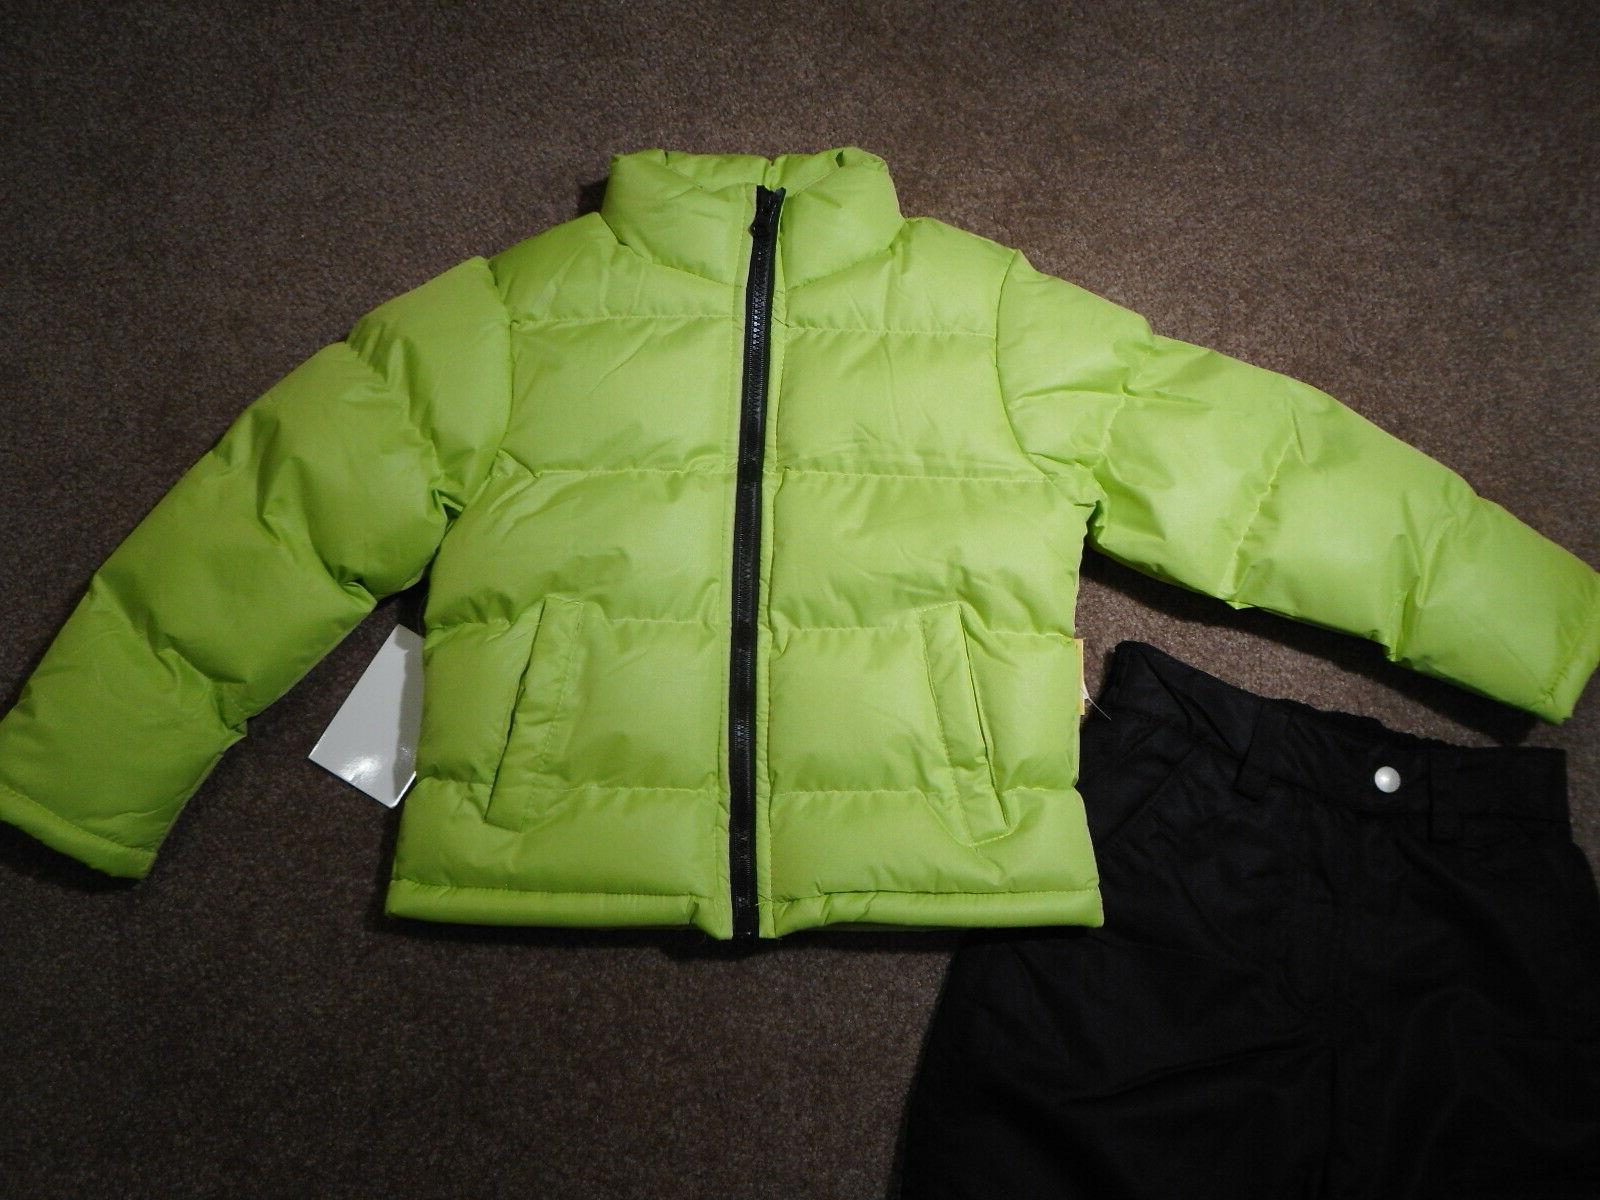 Snowsuits Coats Outerwear Yellow Puffer jackets Snow/Ski Pants 2pc